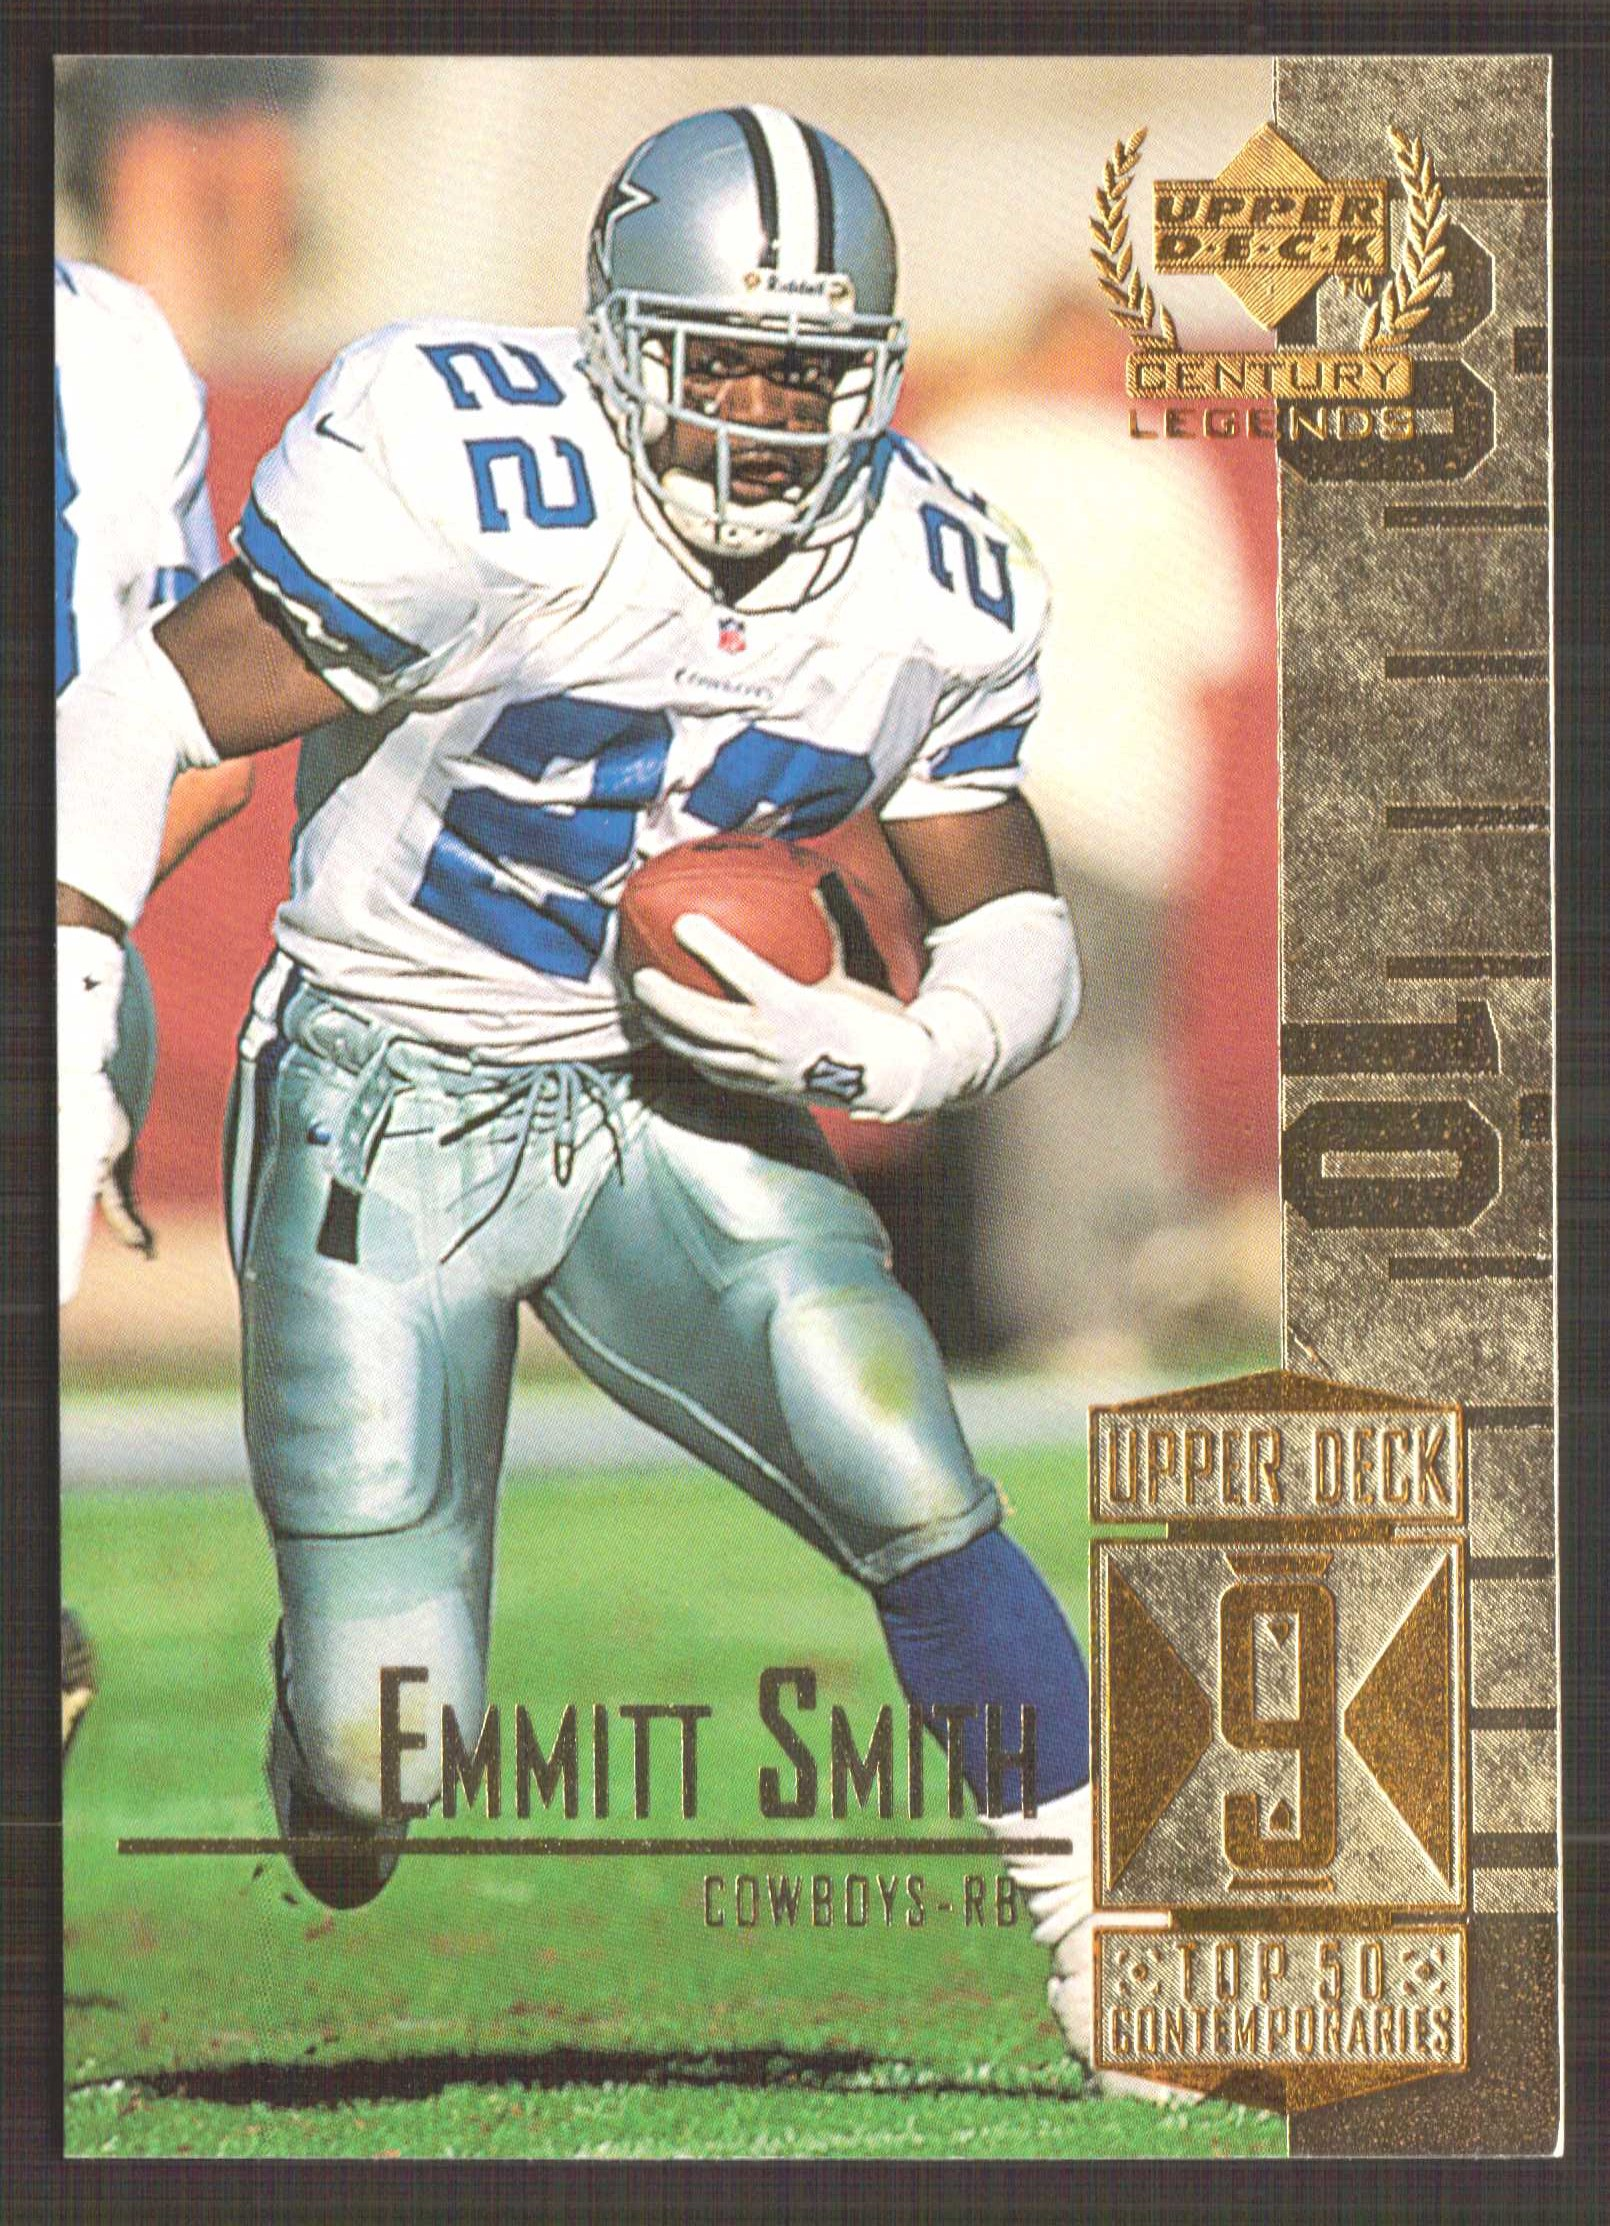 1999 Upper Deck Century Legends #59 Emmitt Smith